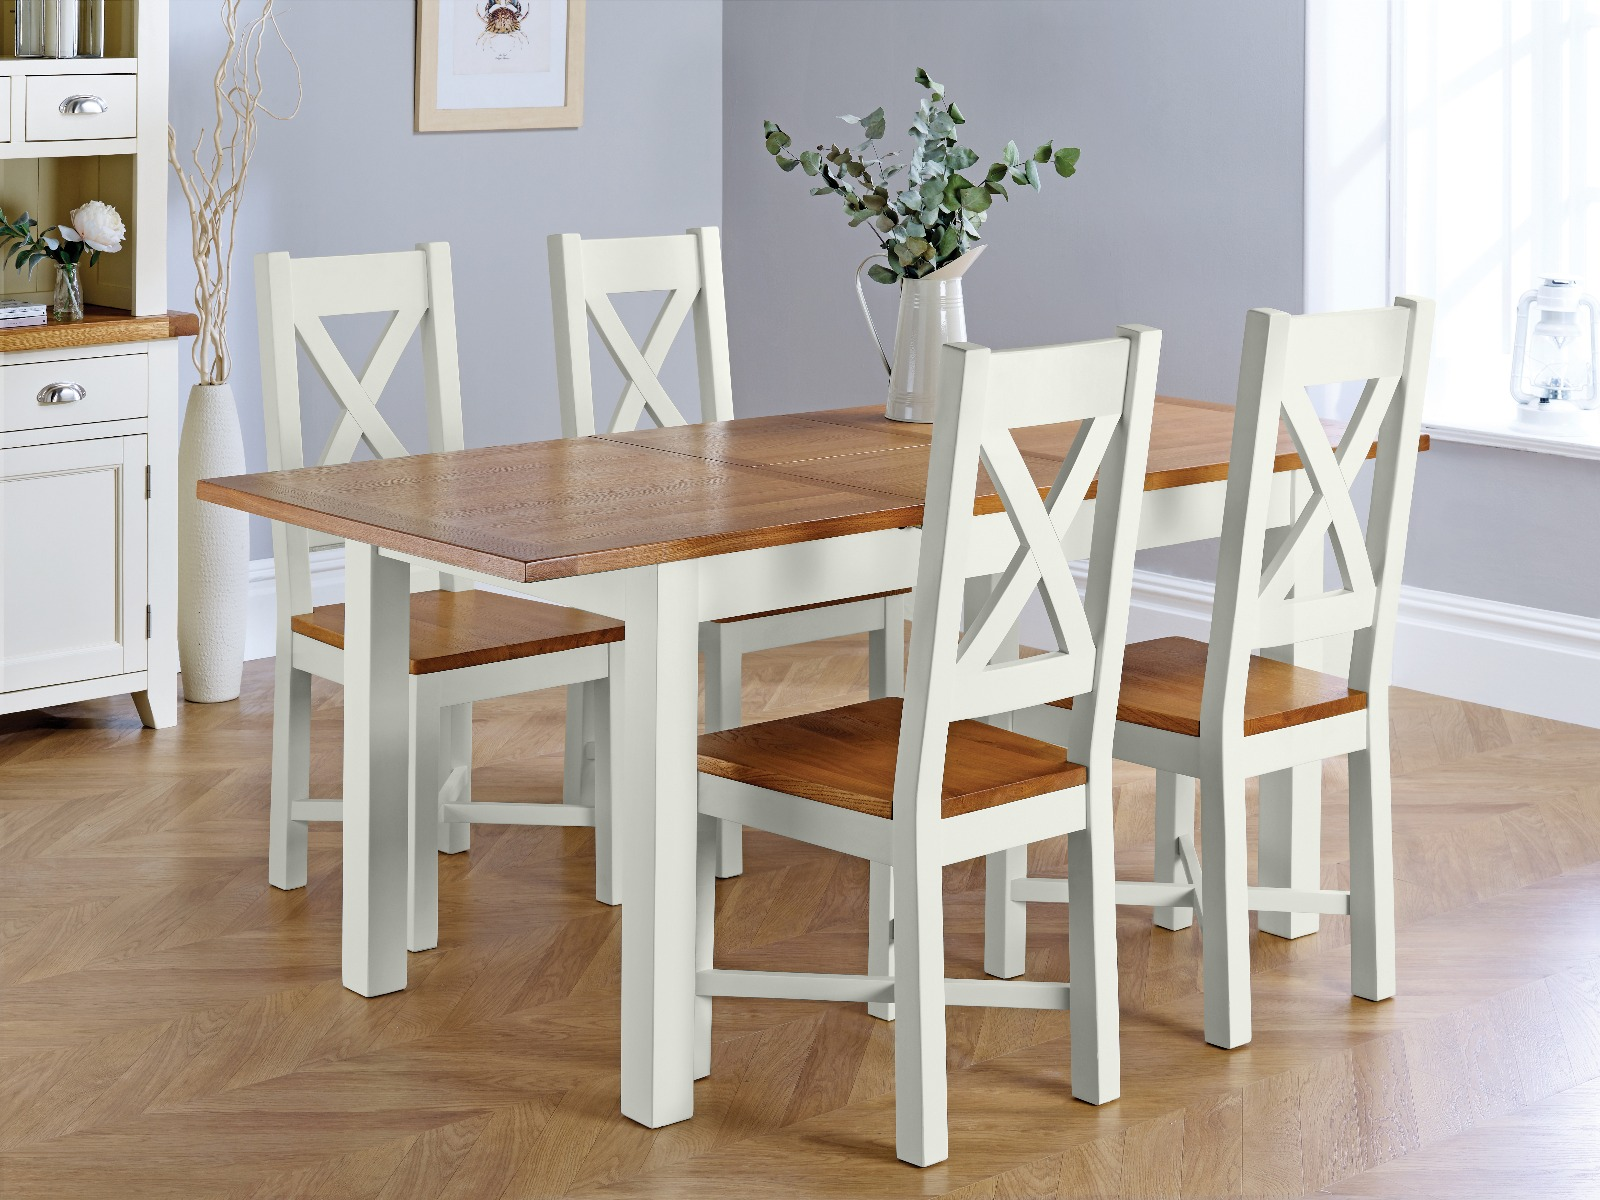 Country Oak 180cm Grey Painted Extending Dining Table 4 Grasmere Grey Painted Chairs